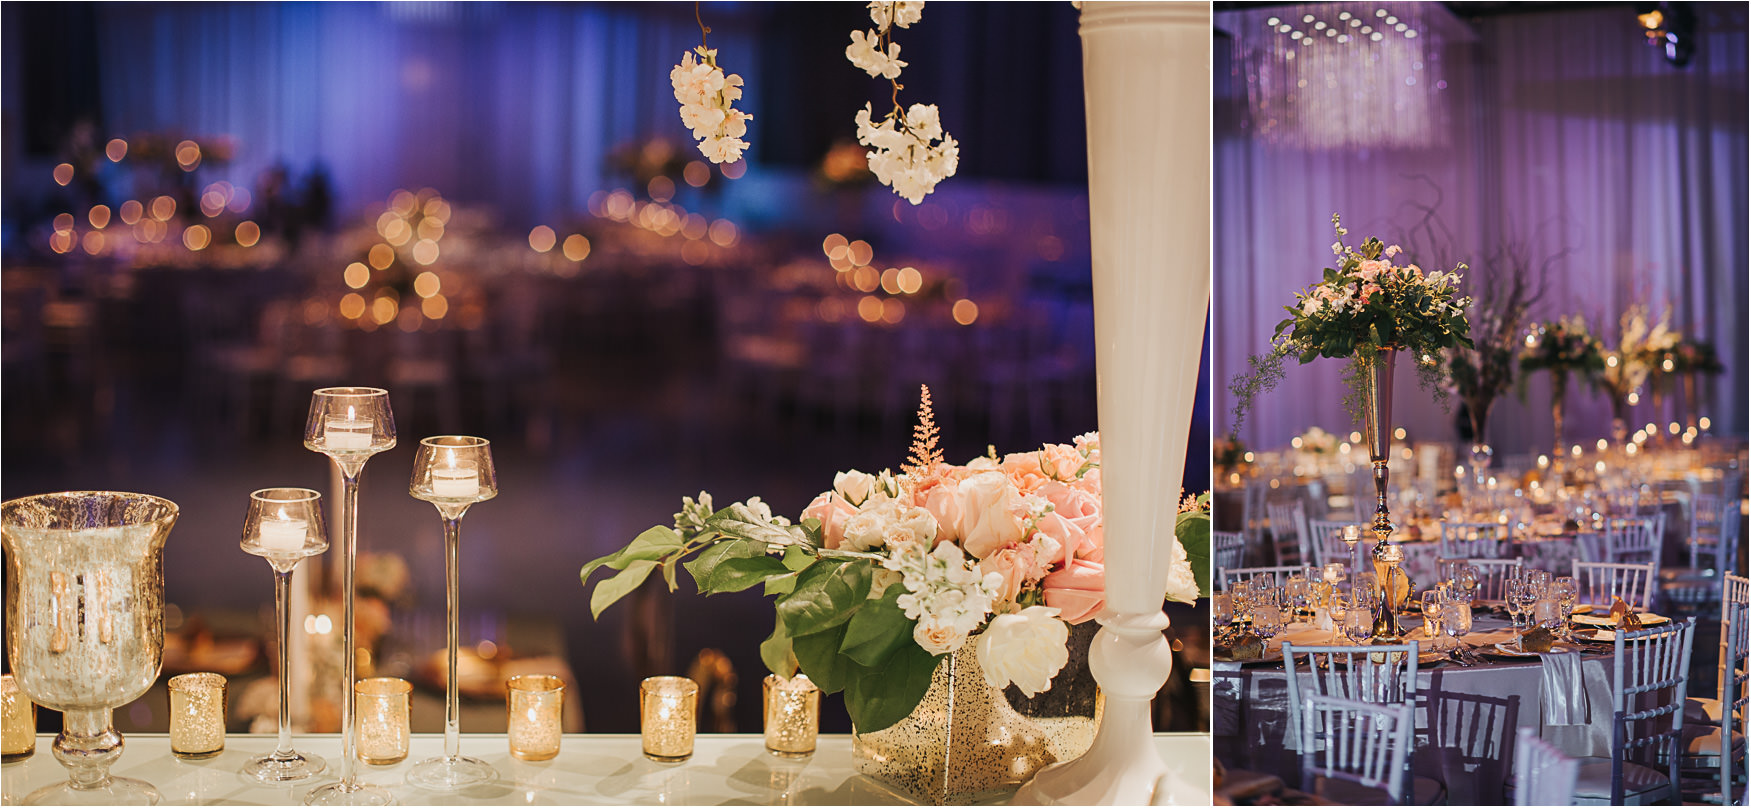 Liberty Grand Artifacts Room Wedding Reception Florals